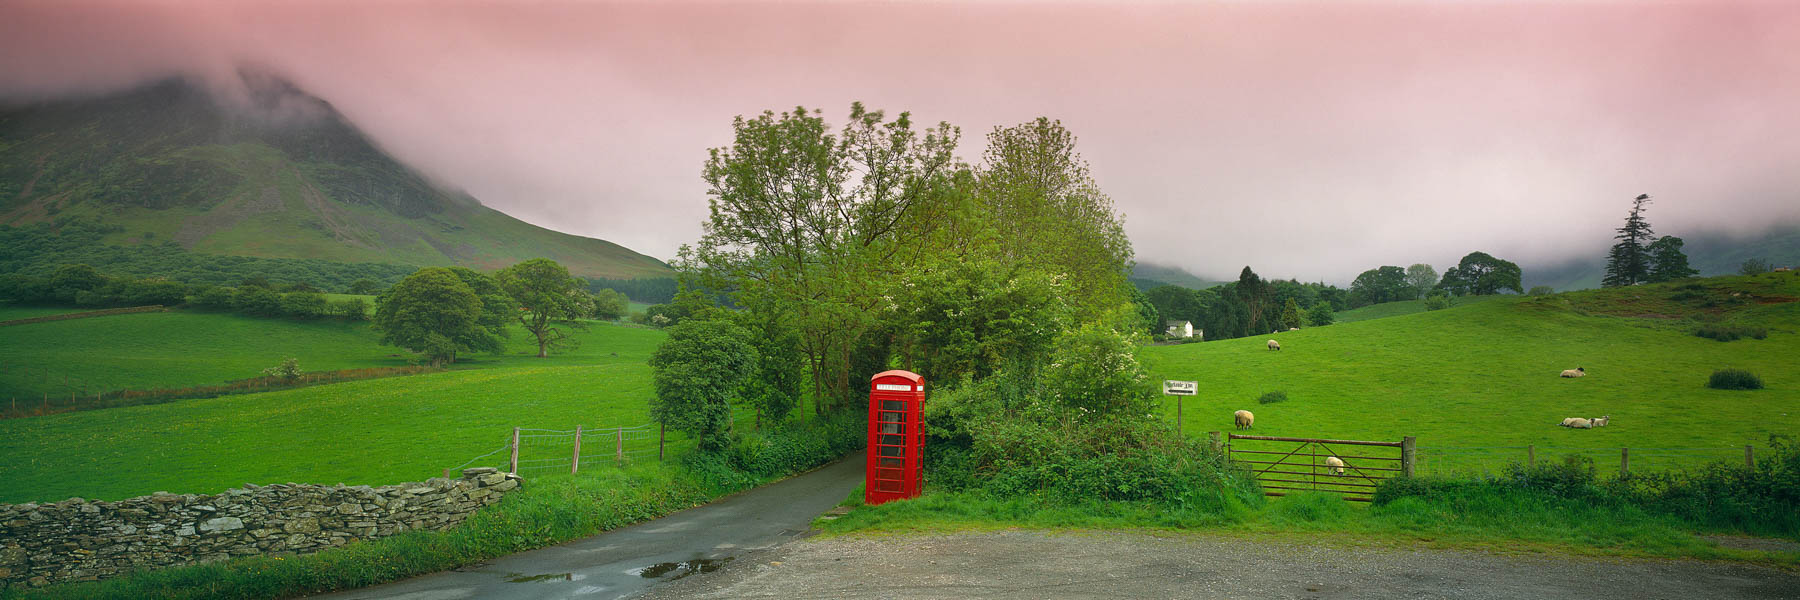 A red telephone box stands proudly amidst green fields in the Lakes District, England, UK.